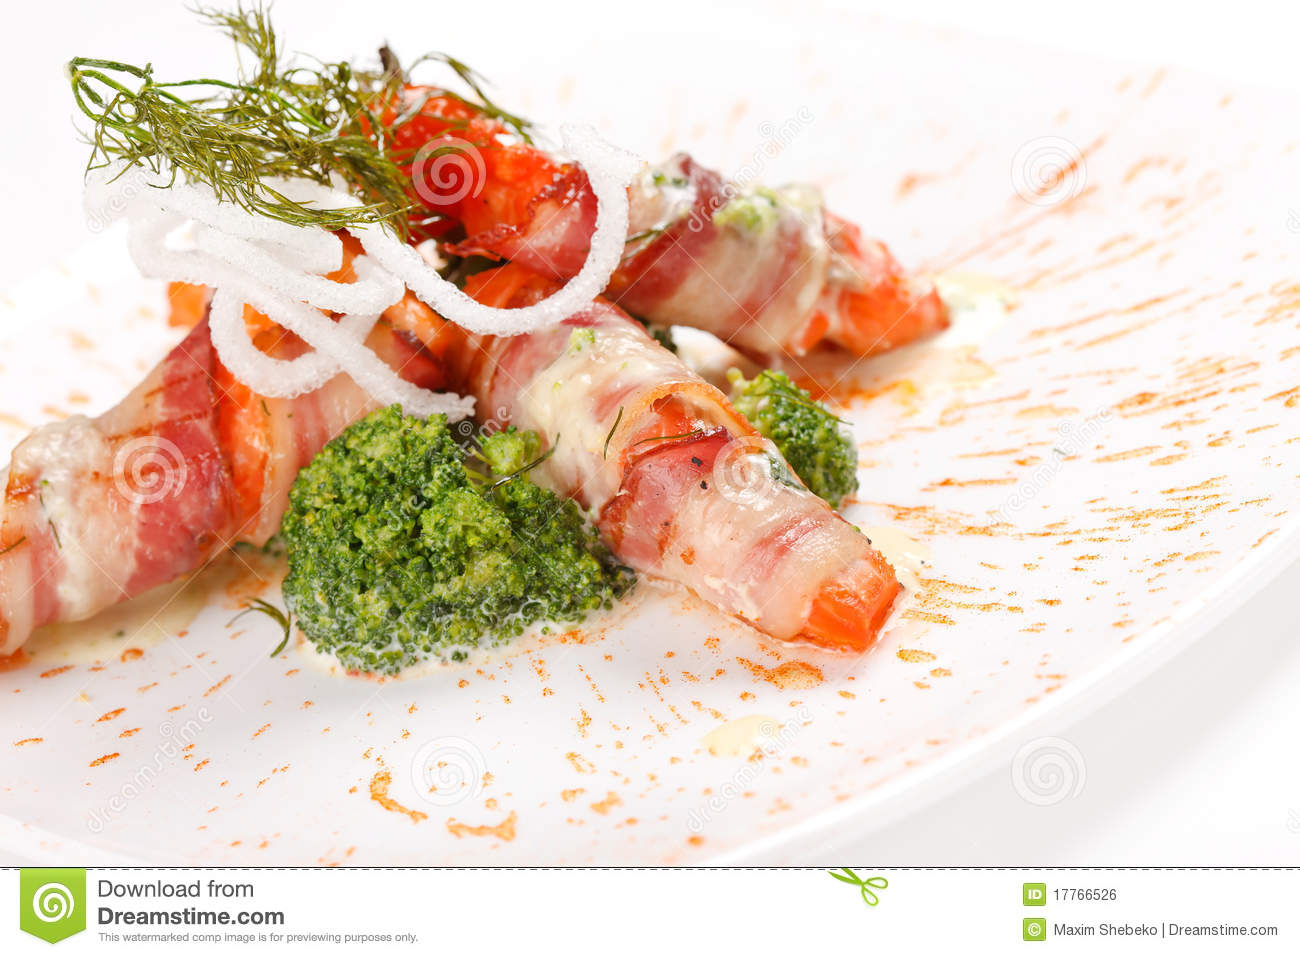 Smoked Salmon Rolls Royalty Free Stock Image - Image: 17766526